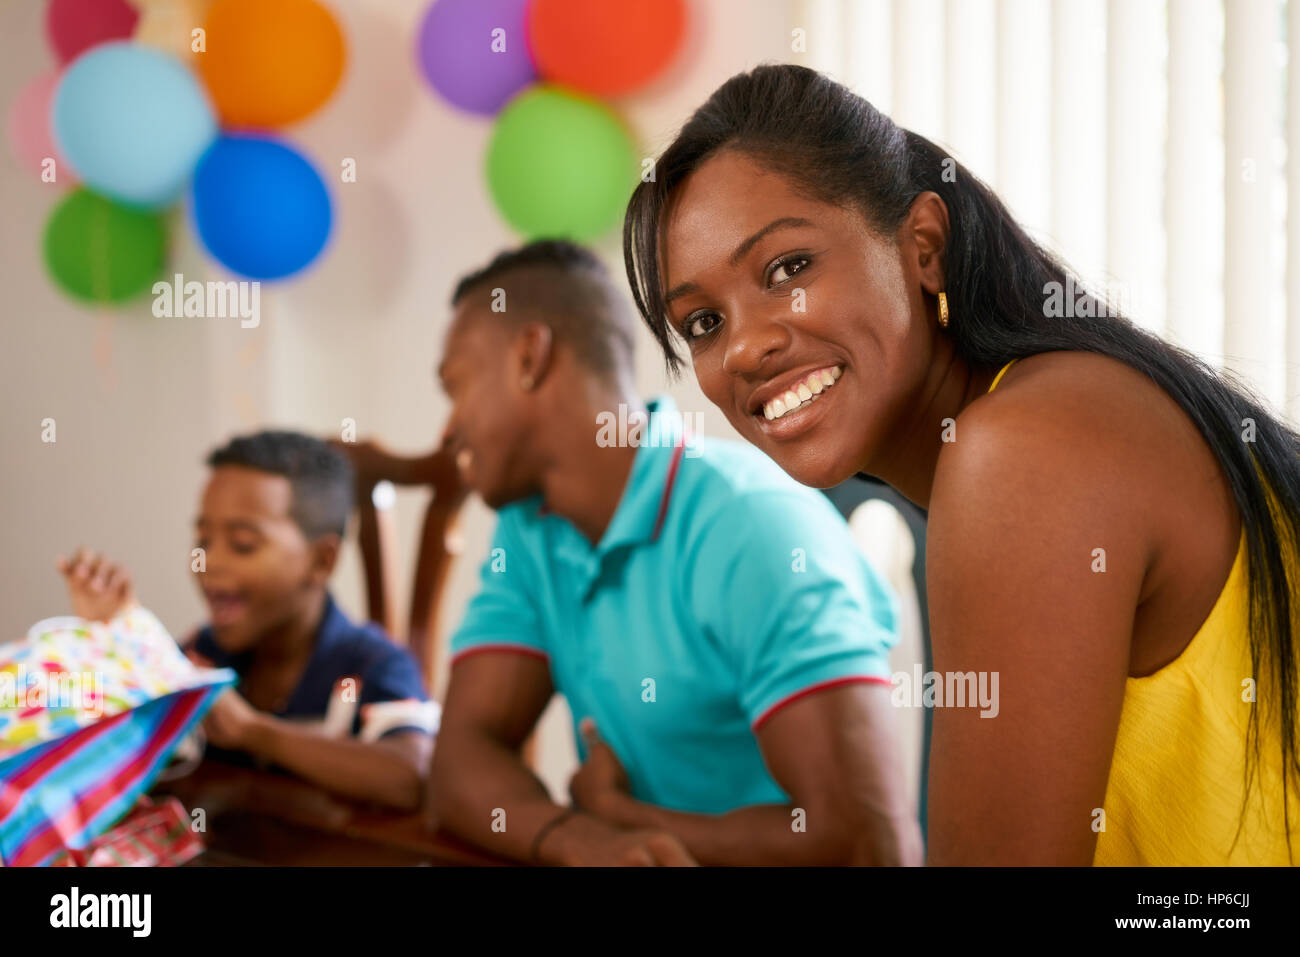 Happy black family at home. African american father, mother and child celebrating birthday, having fun at party. - Stock Image